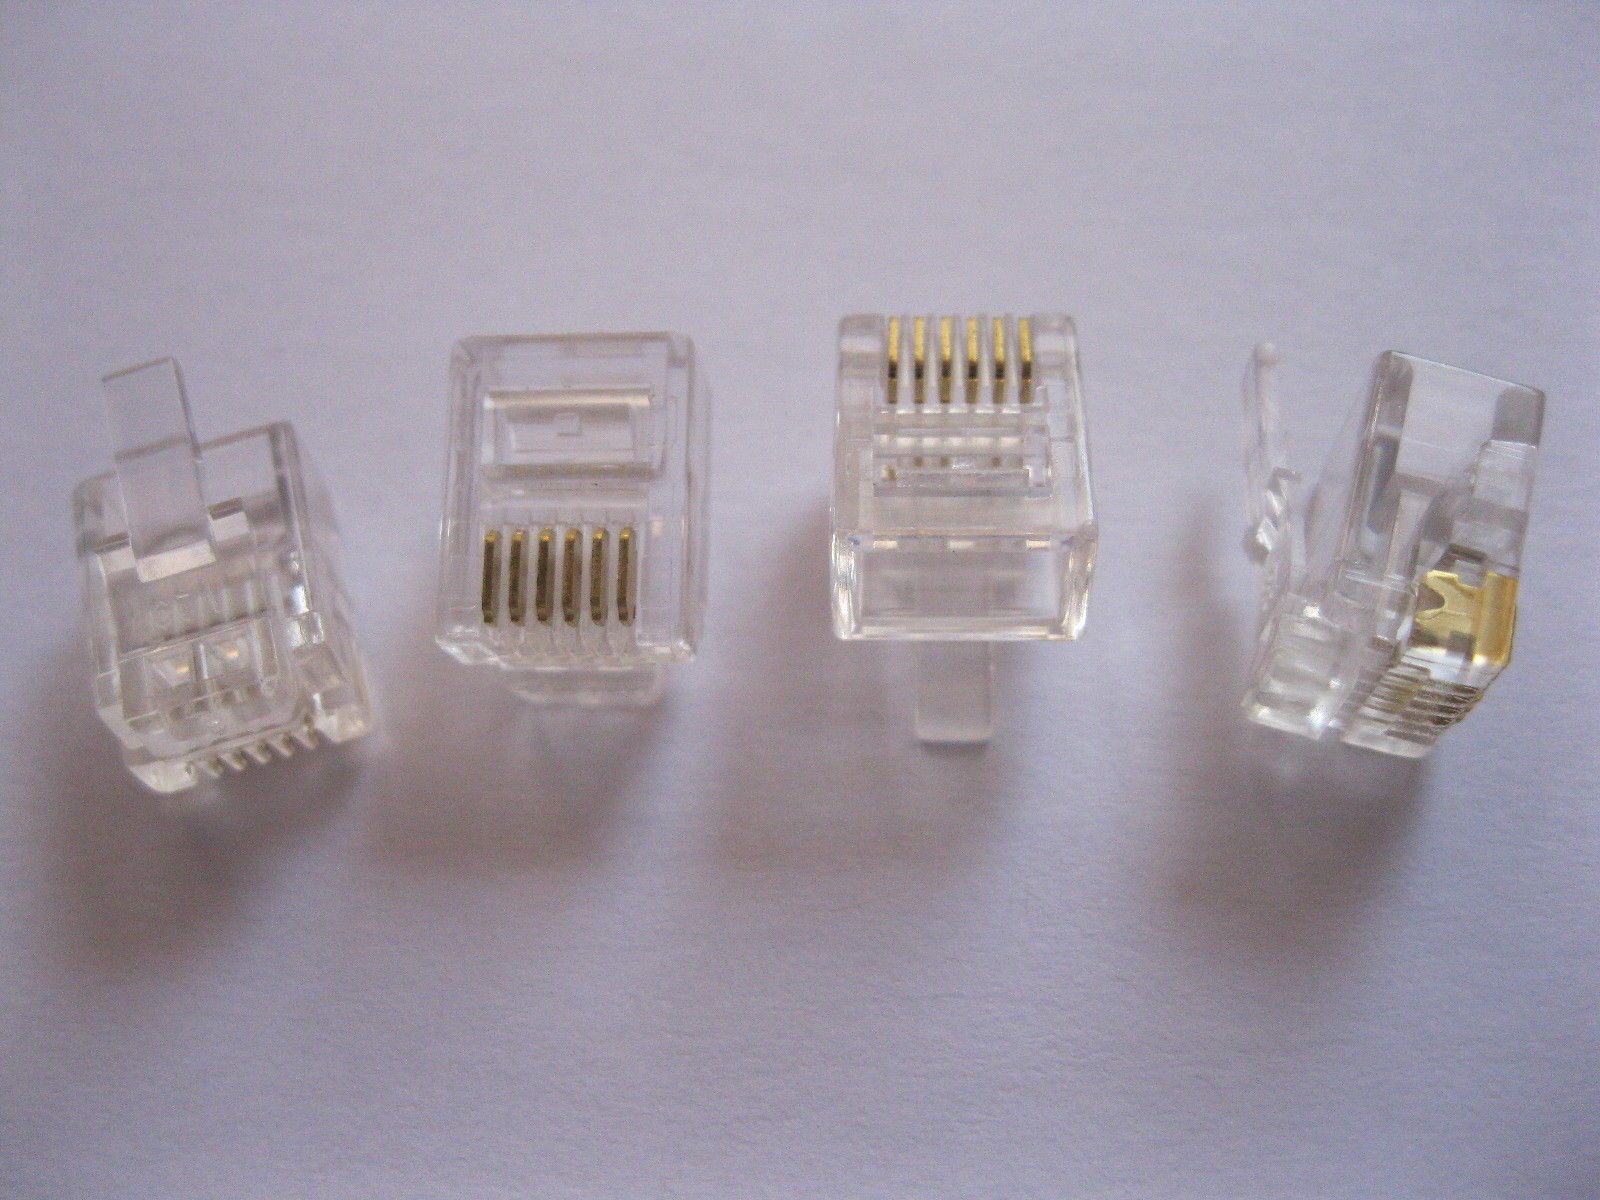 цена на 100 pcs RJ11 6P6C Modular Plug Telephone Connector